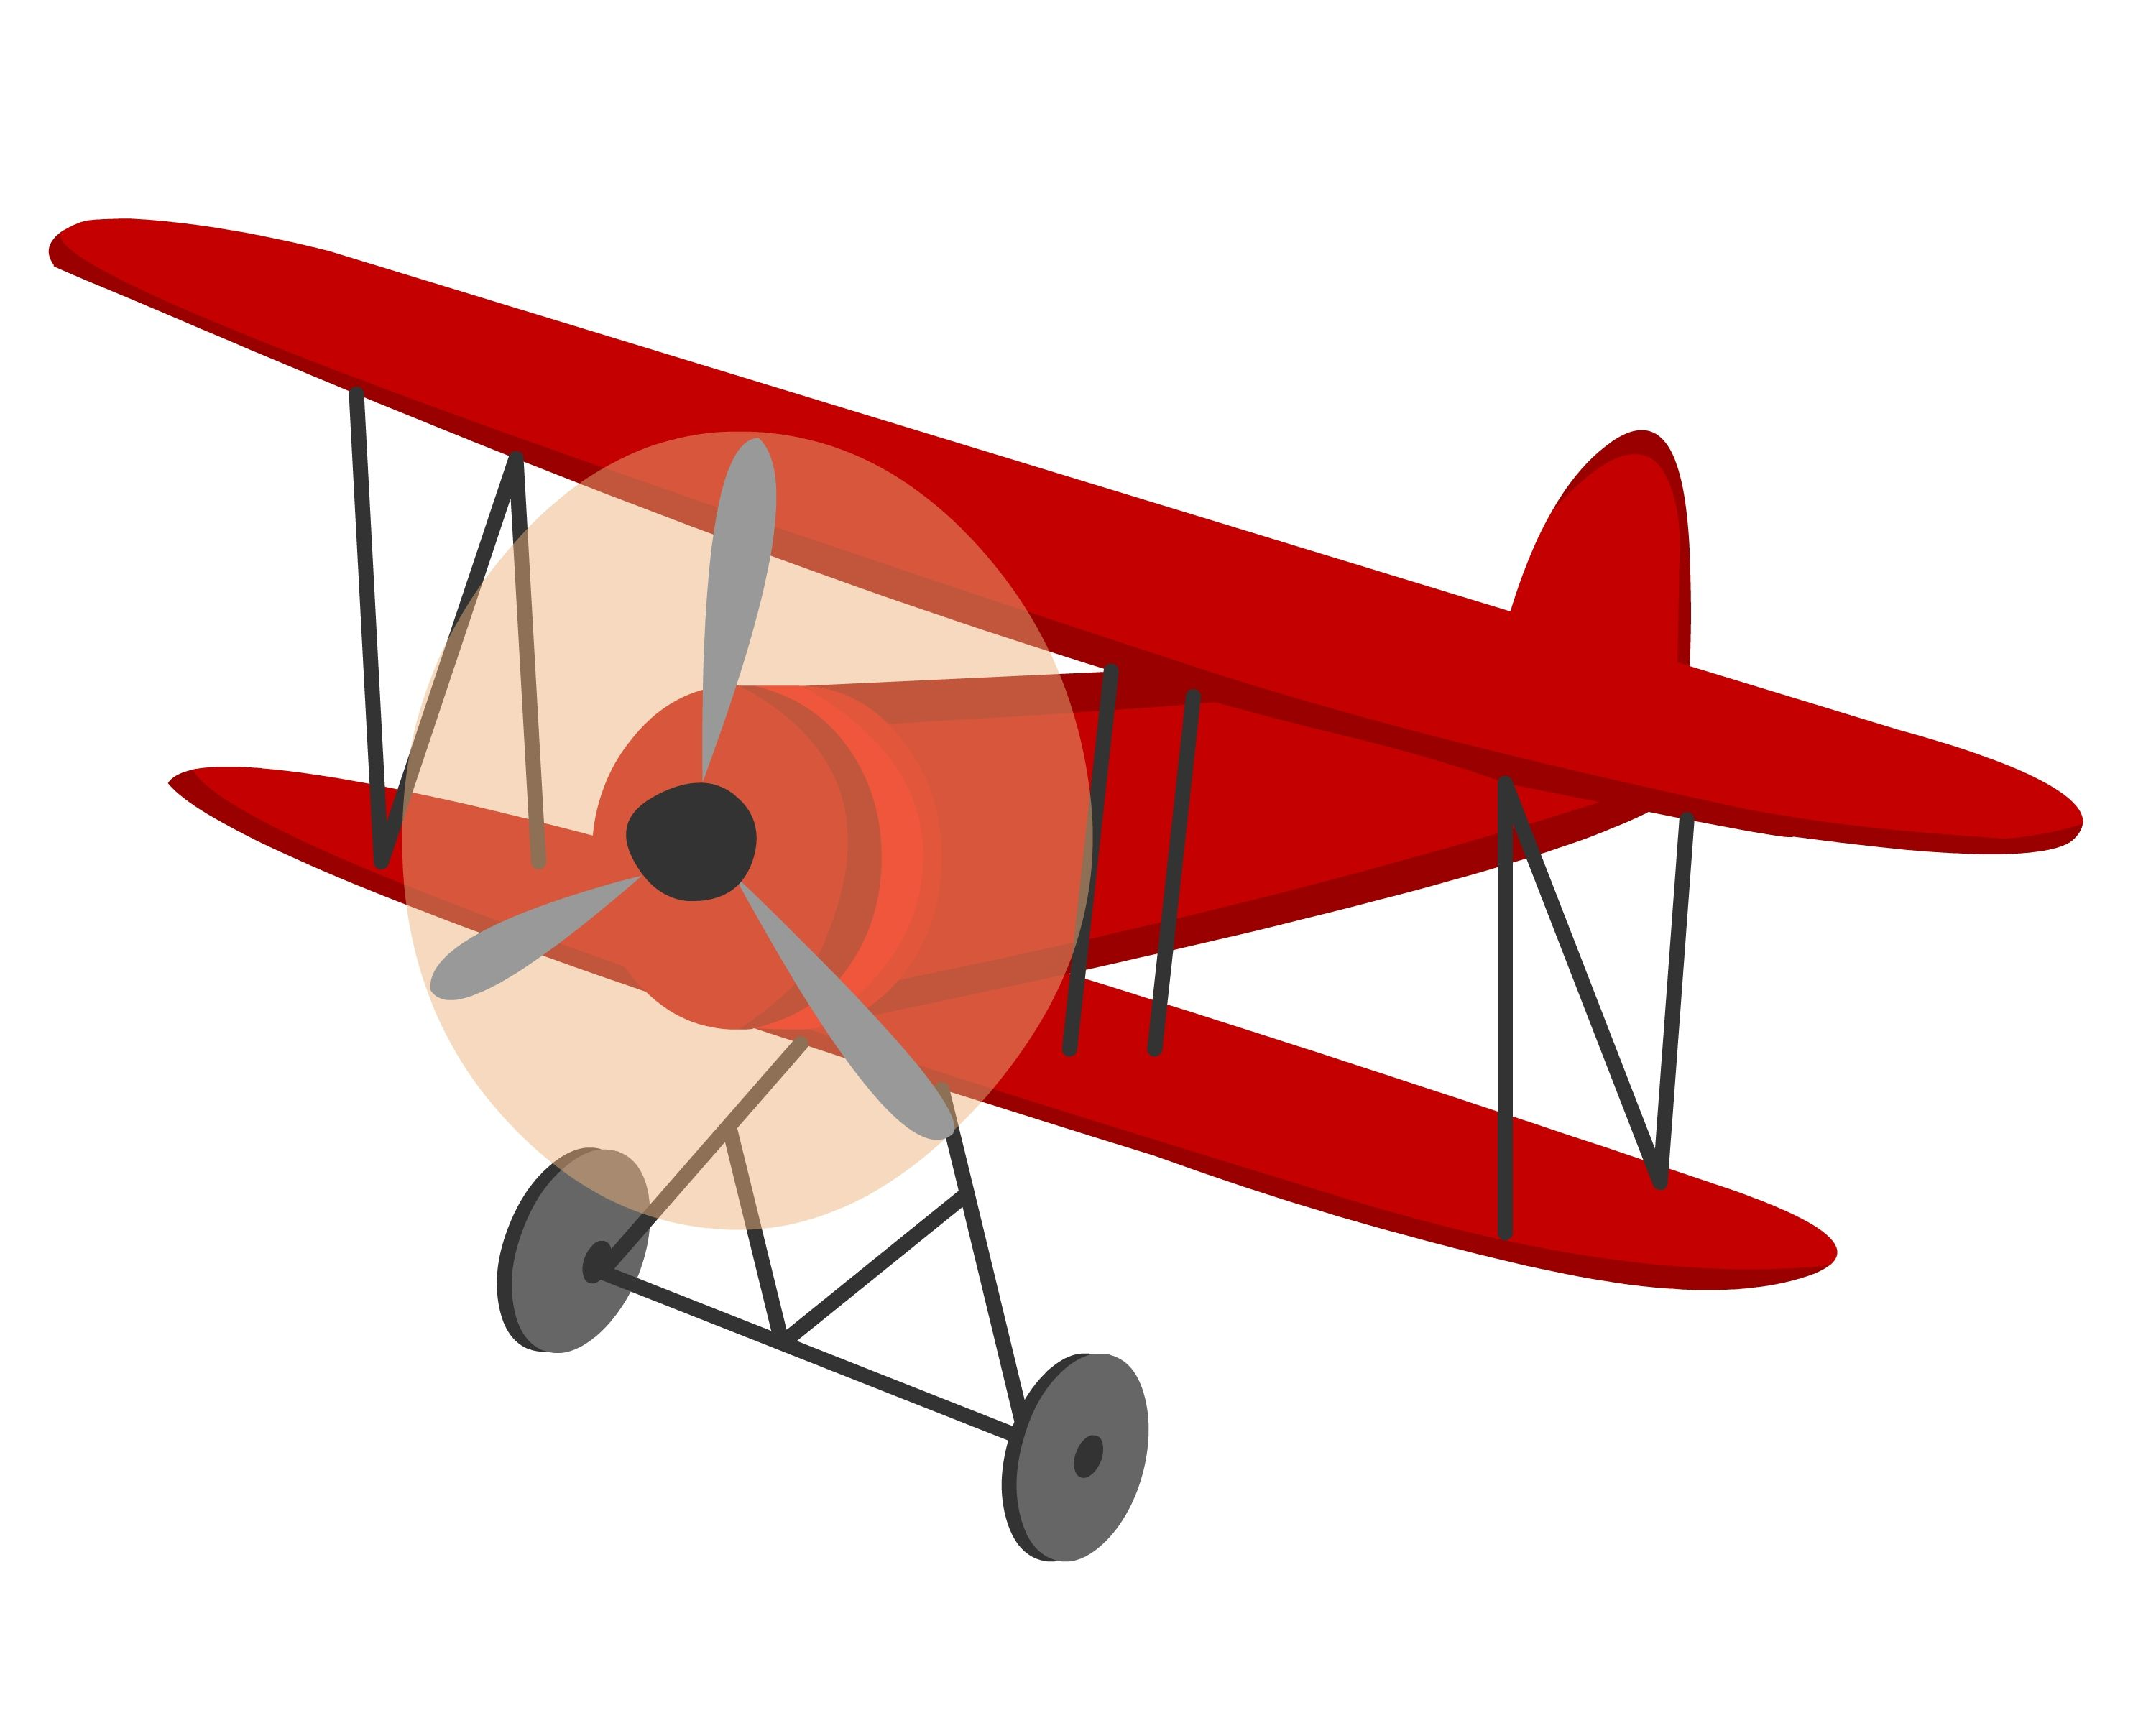 Wide banners clipart plane themes banner royalty free download Vintage Biplane Clipart Vintage biplane clipart | The men in my life ... banner royalty free download